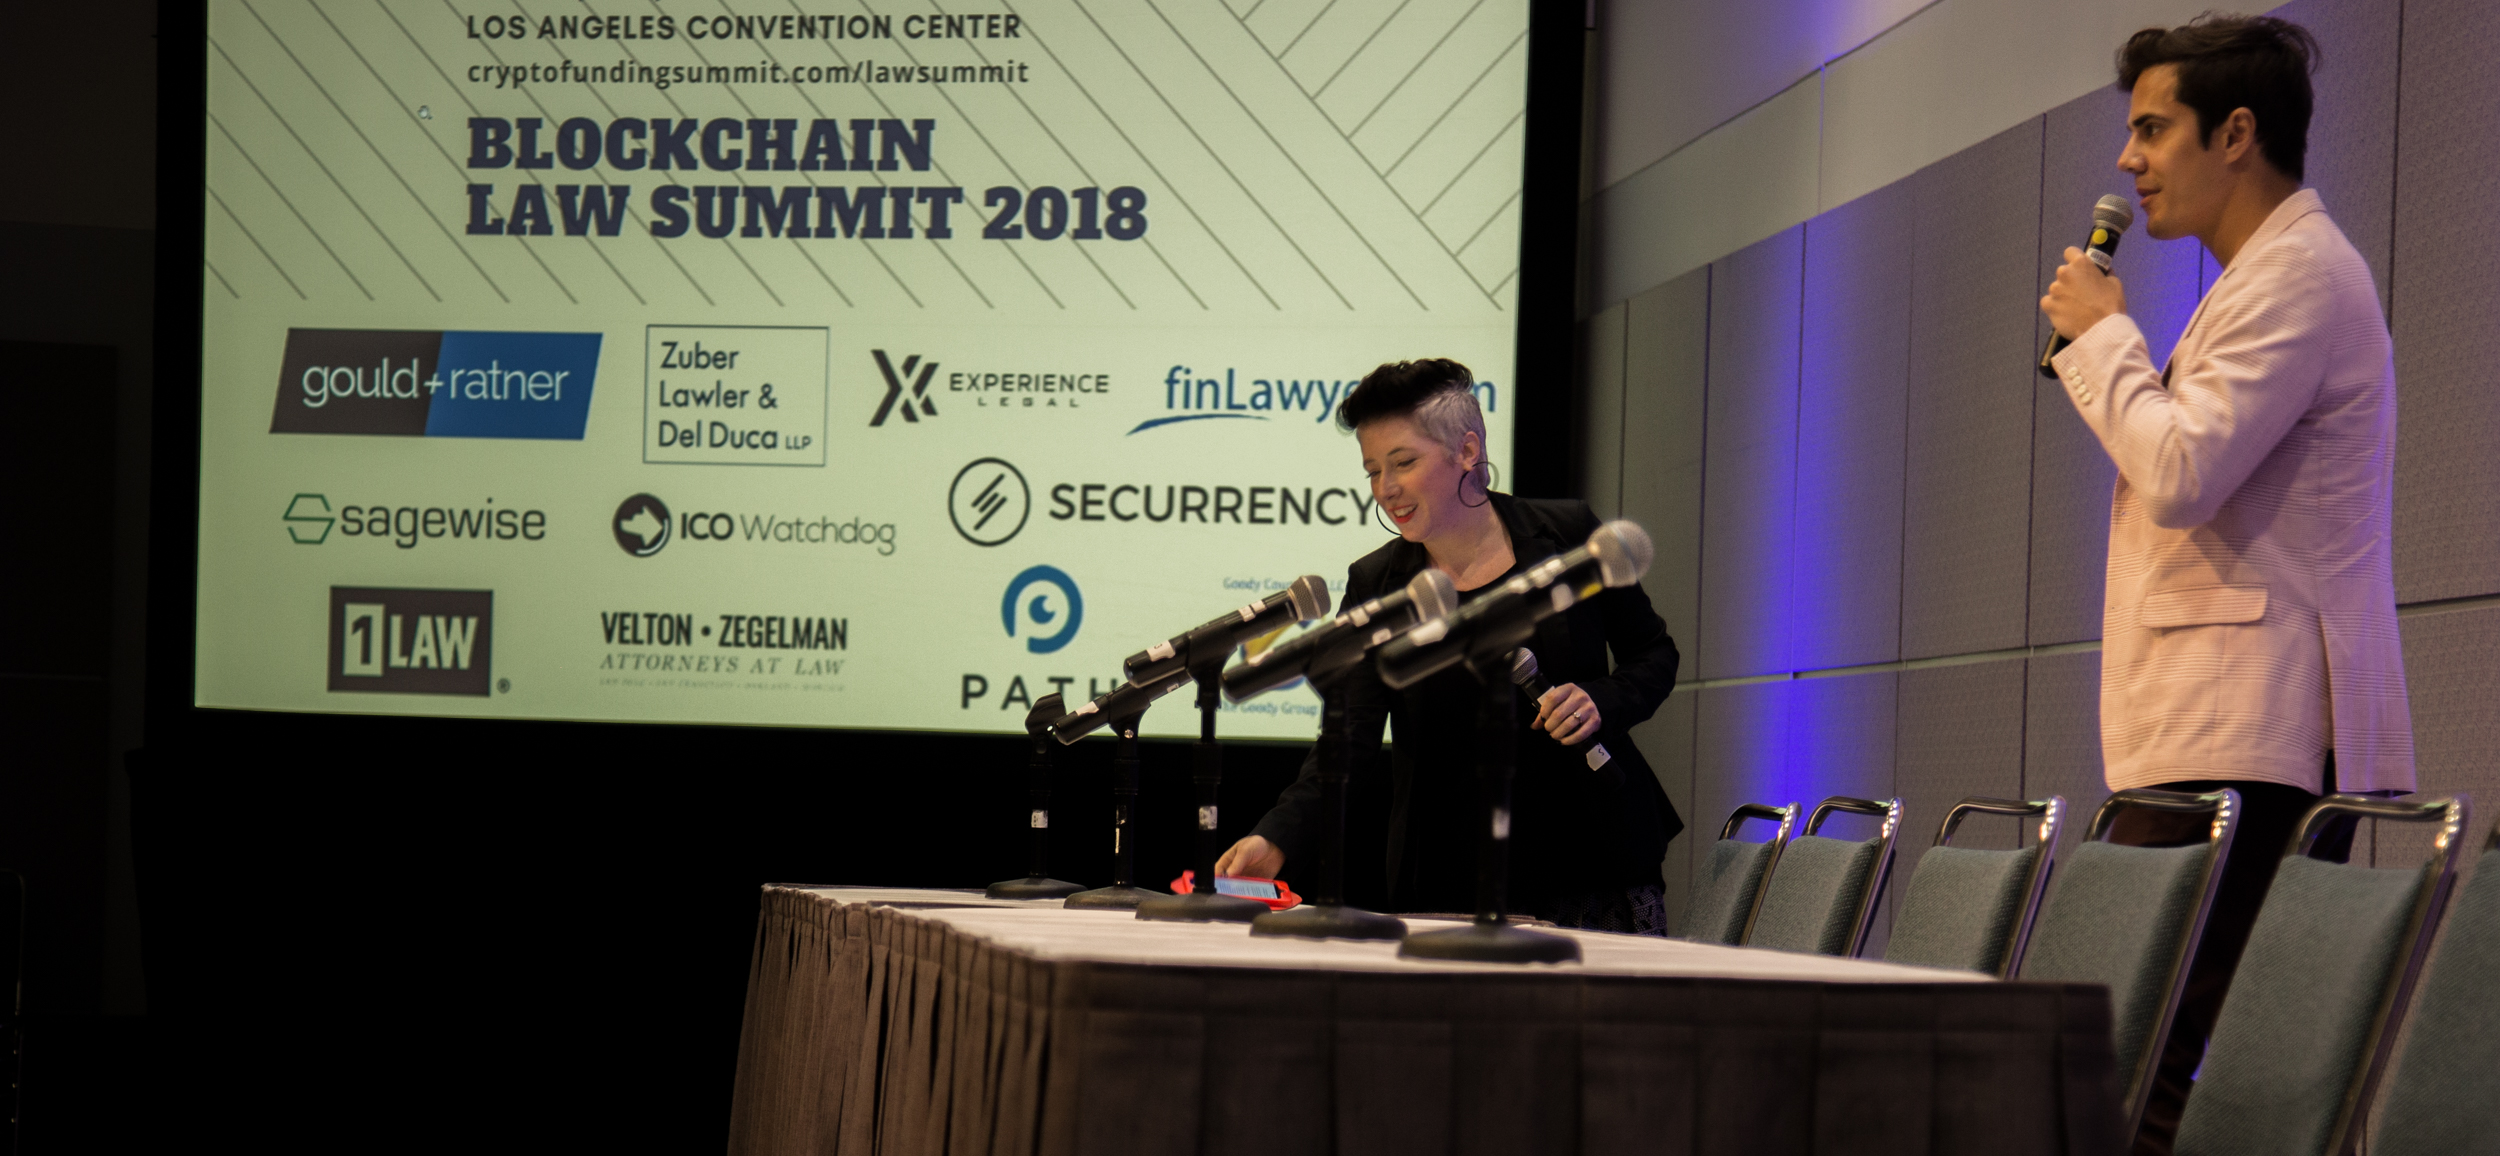 Blockchain Law Summit